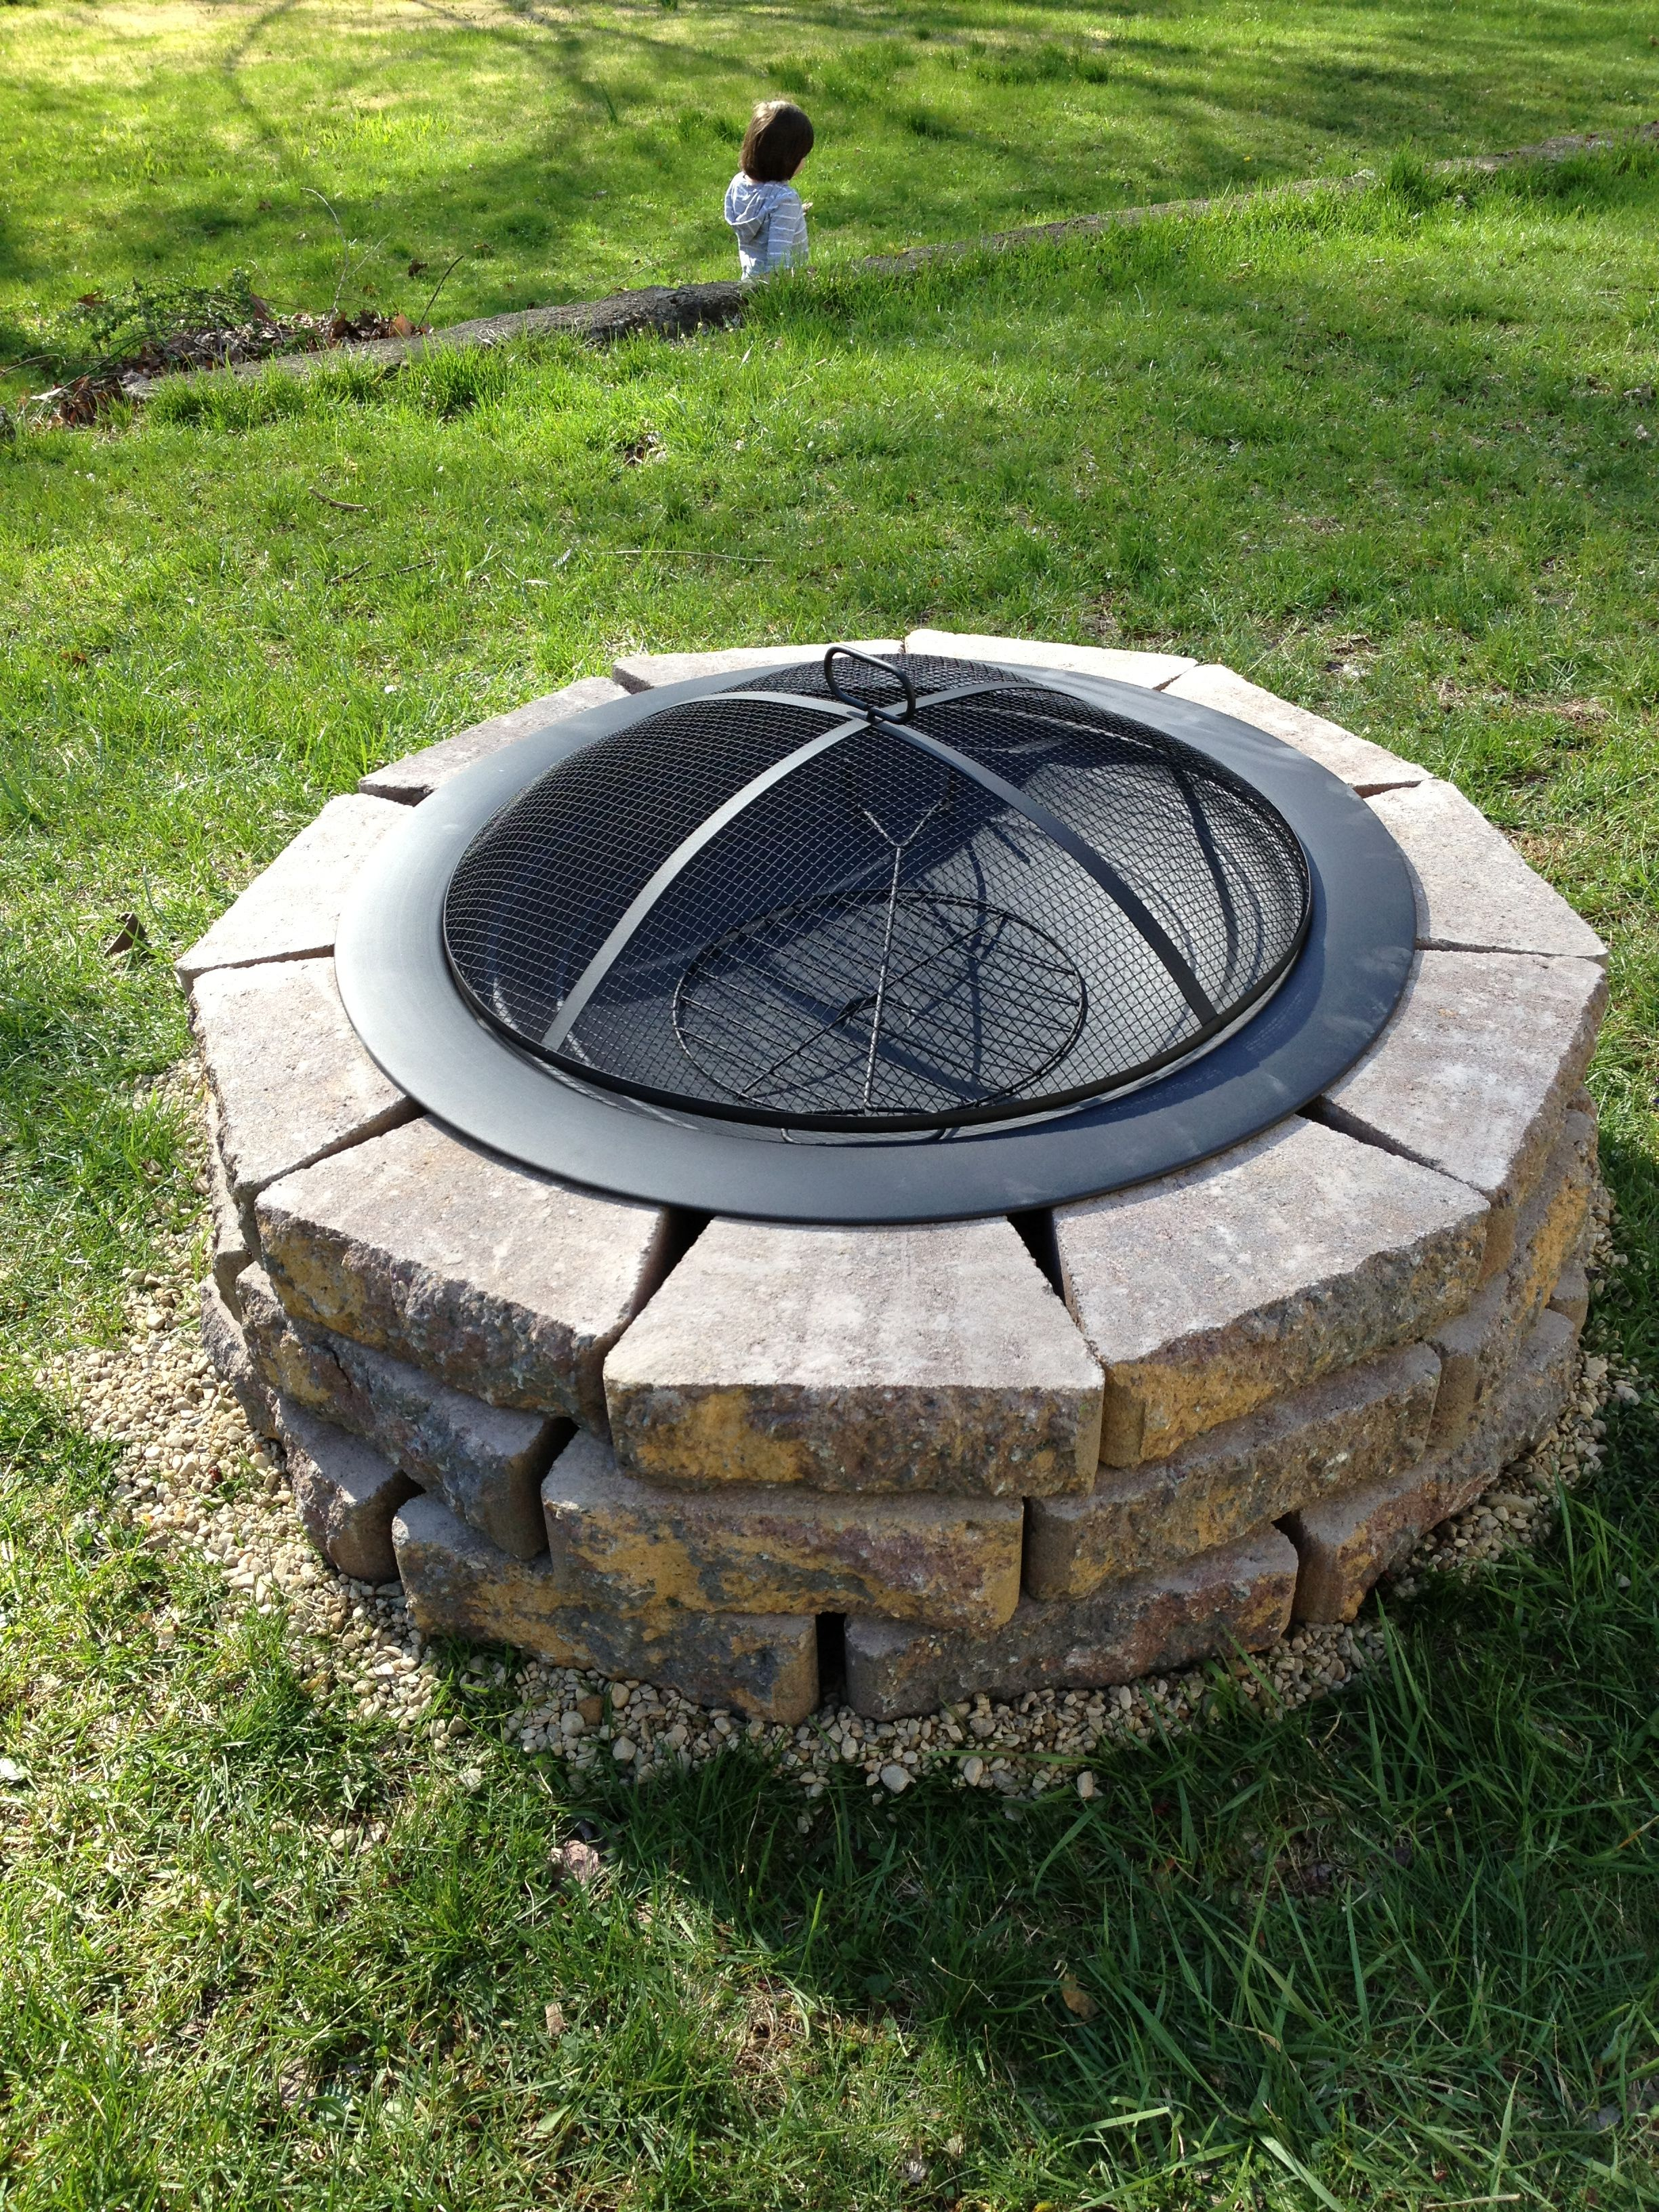 Diy Fire Pit With Spark Screen Fire Pit Landscaping Diy Fire Pit Fire Pit Plans